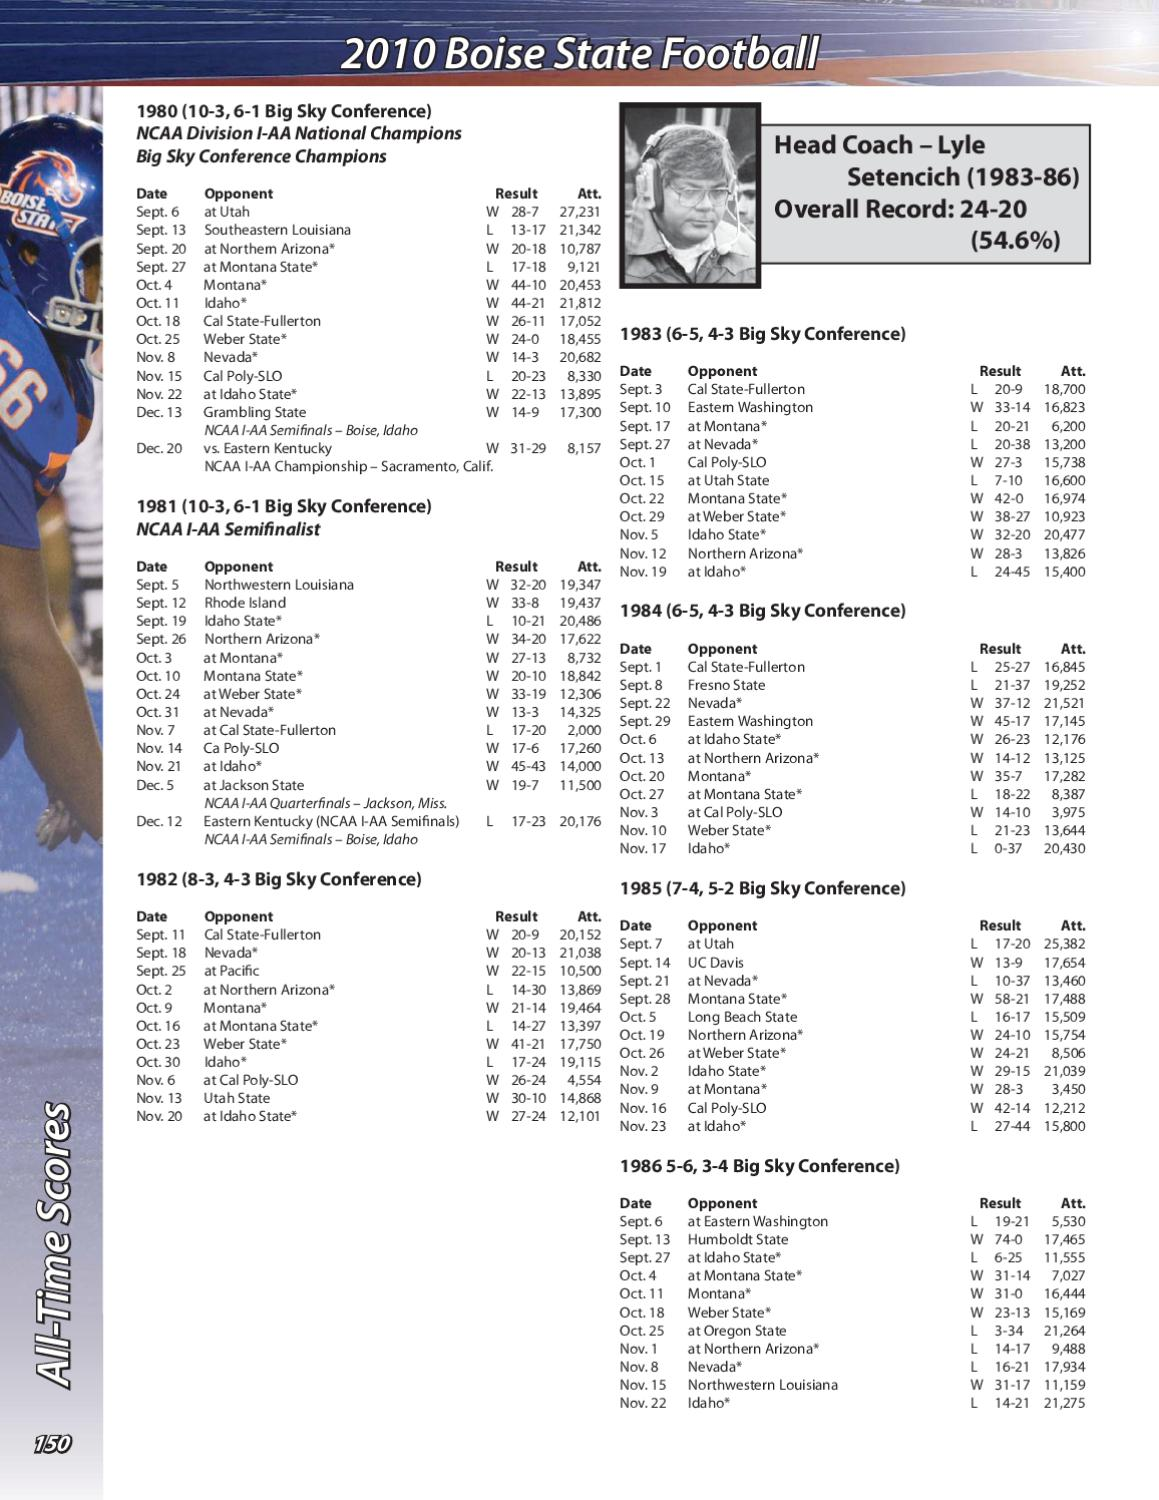 2010 Boise State Football Yearbook By Boise State University